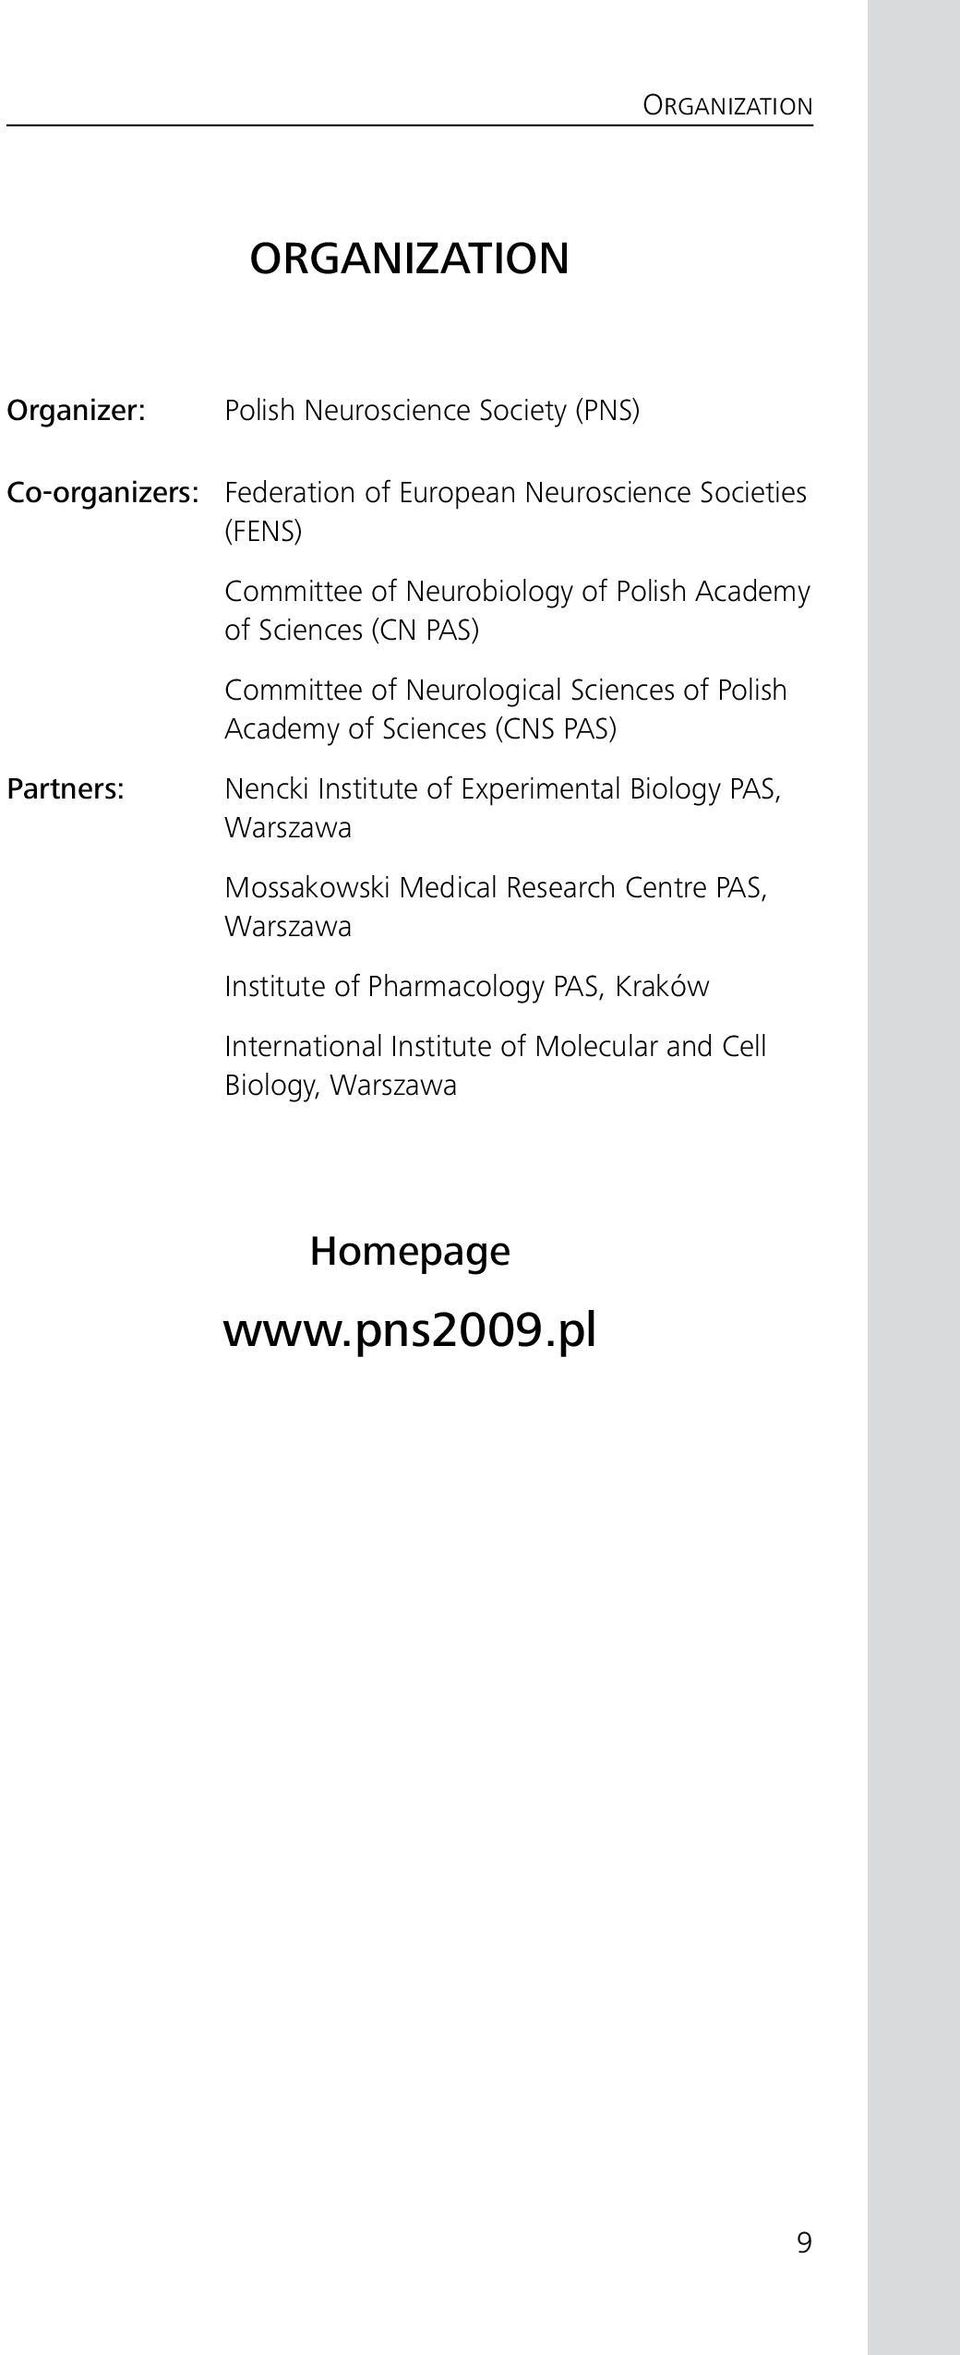 Neurological Sciences of Polish Academy of Sciences (CNS PAS) Partners:, Warszawa Mossakowski Medical Research Centre